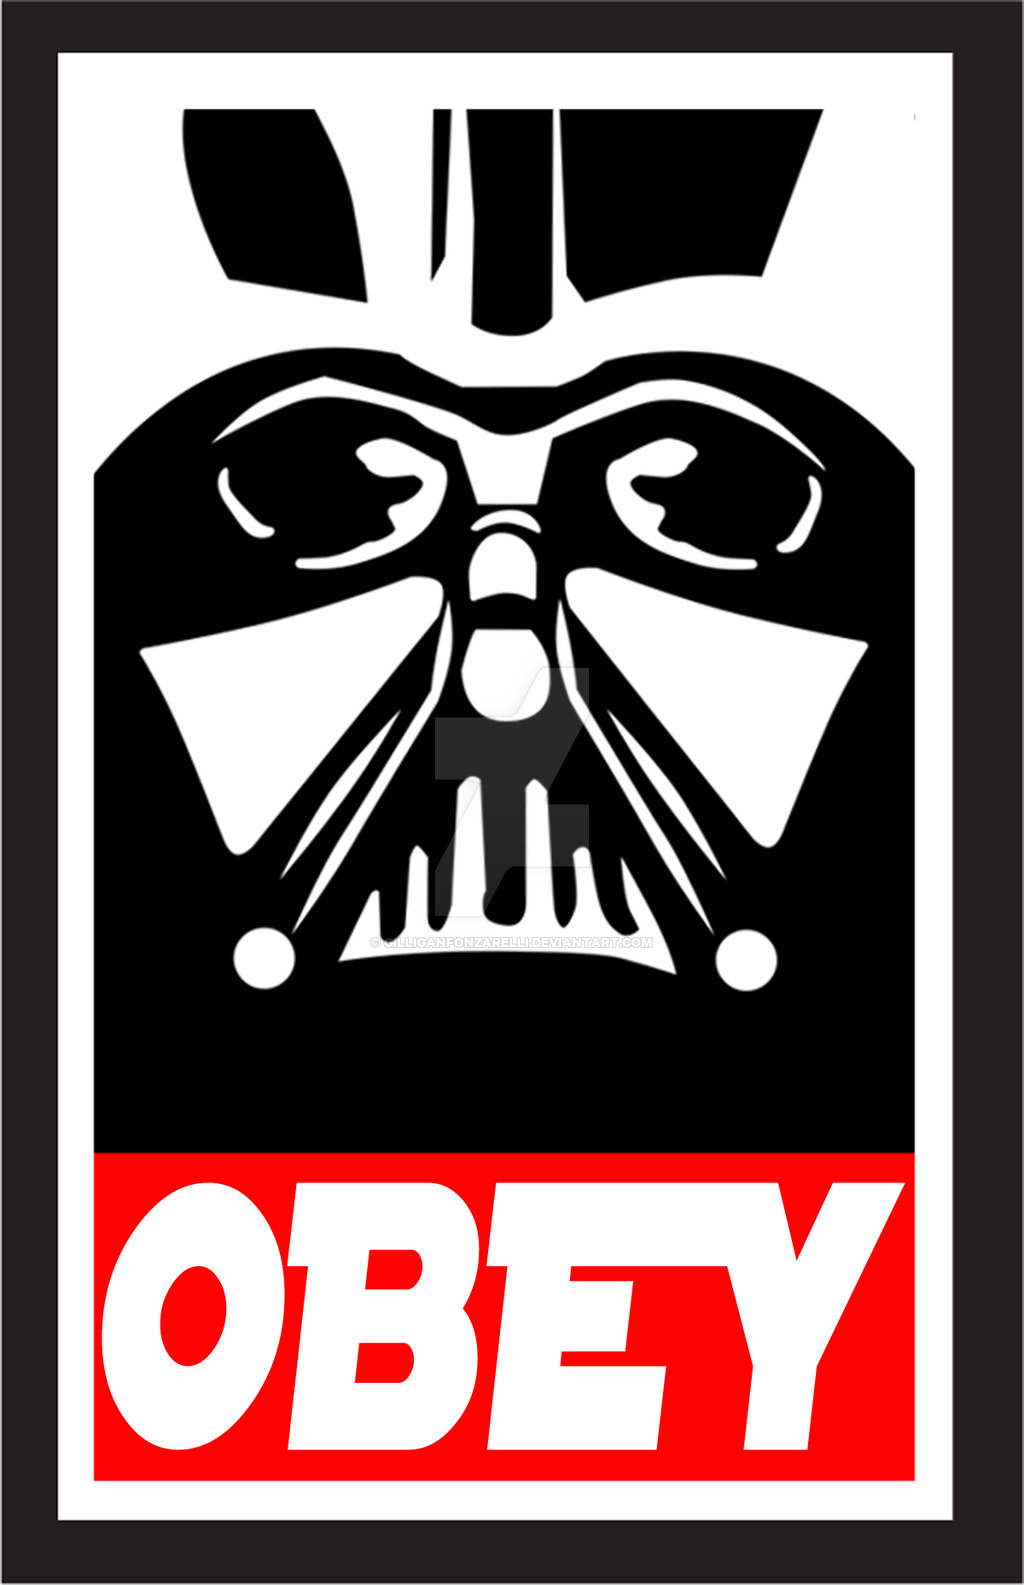 Obey Obey Obey Roblox - Obey Shirts Roblox Toffee Art